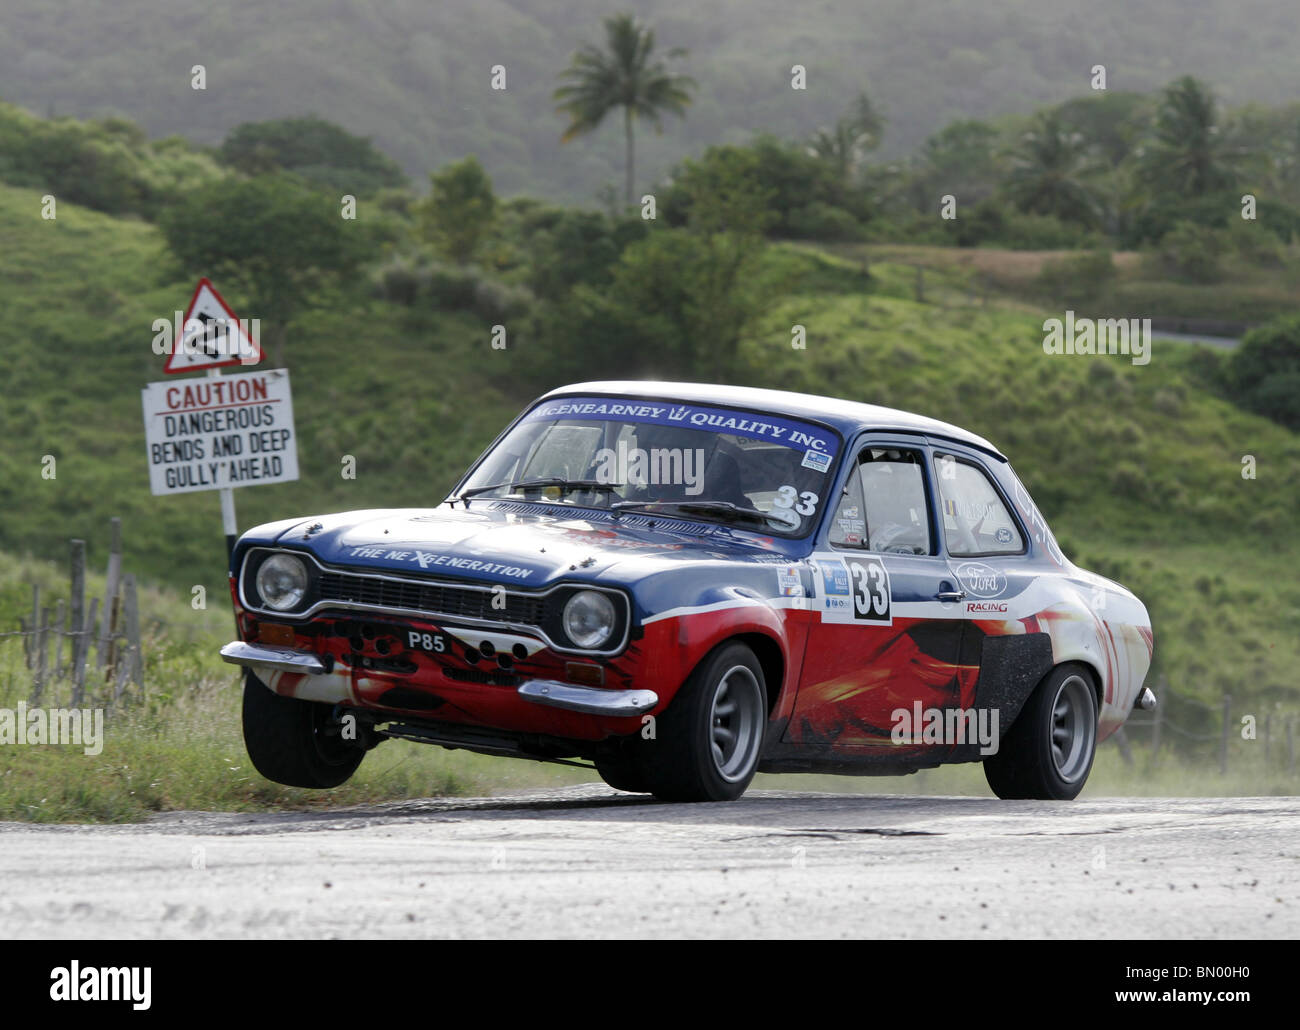 Ford Escort Rally Car Stock Photos & Ford Escort Rally Car Stock ...